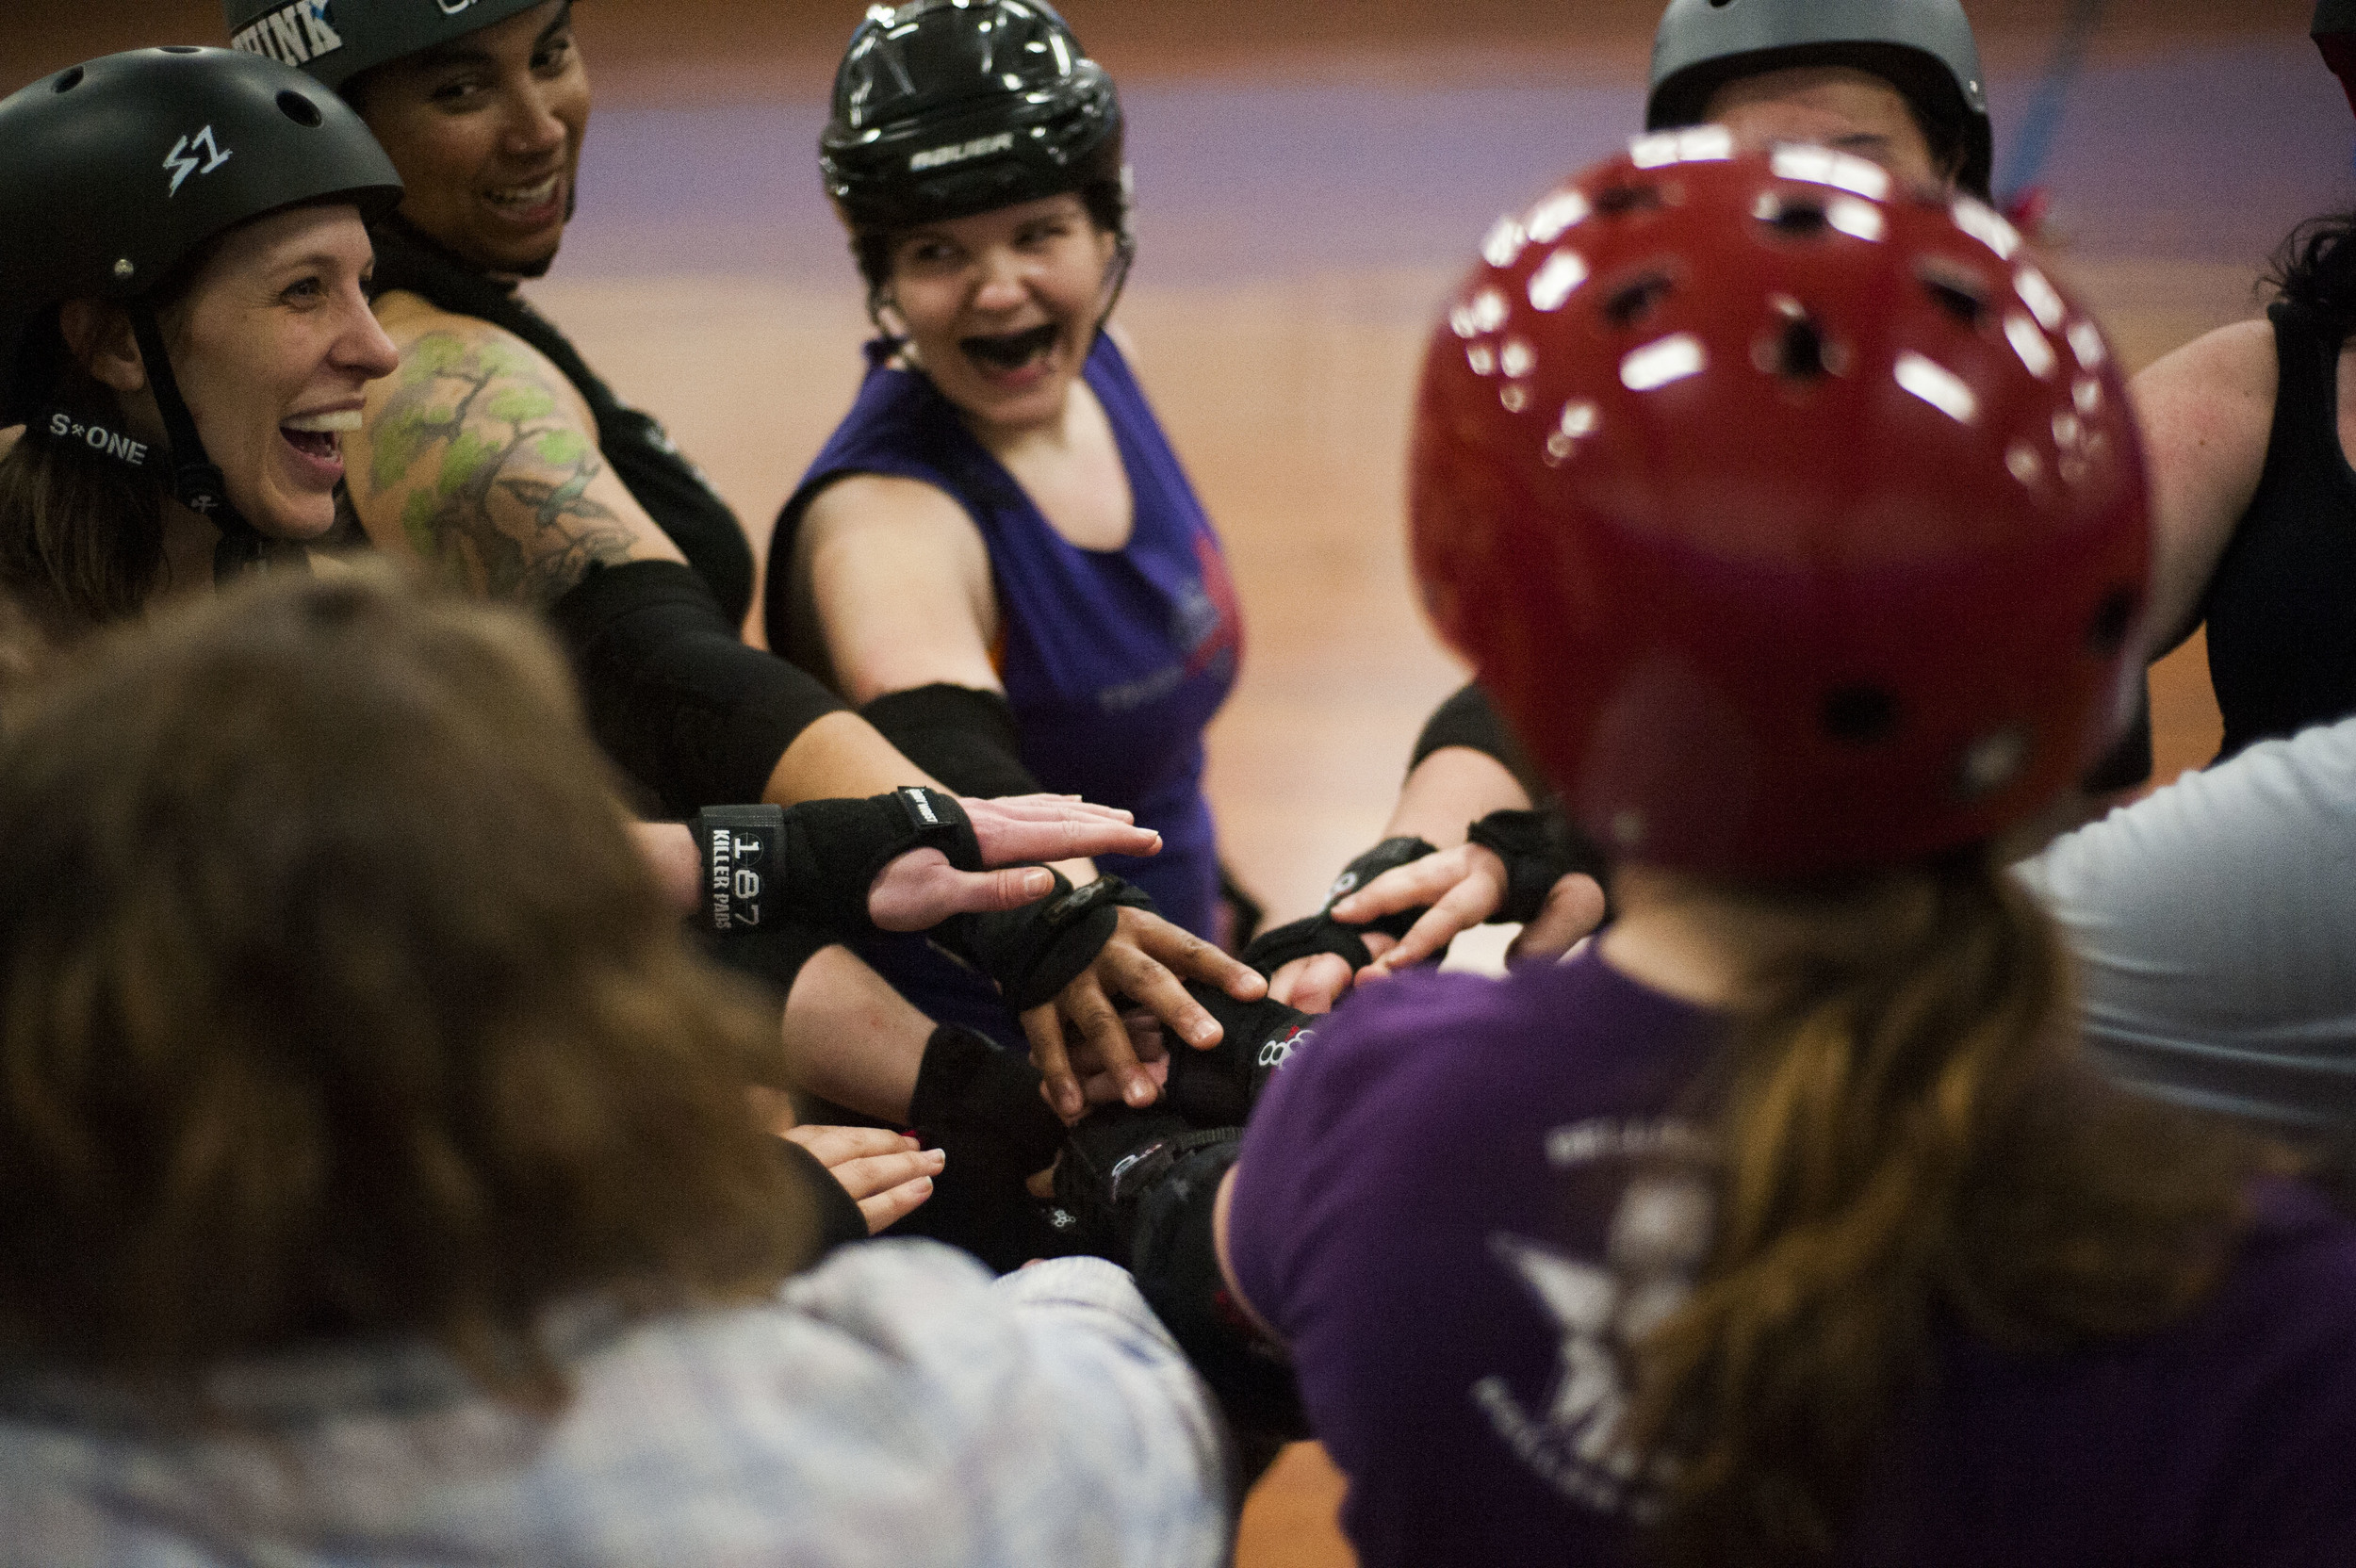 """Hot, tired and sore the Bellingham Roller Betties team Tough Love brings their hands in for a cheer at the end of their late night practice. The women of the Roller Betties train hard and work together to become a tight-knit cohesive team. Hadassah """"H'Elanna Torrez"""" McGill (center) leads the post-practice chant, surrounded by her teammates."""